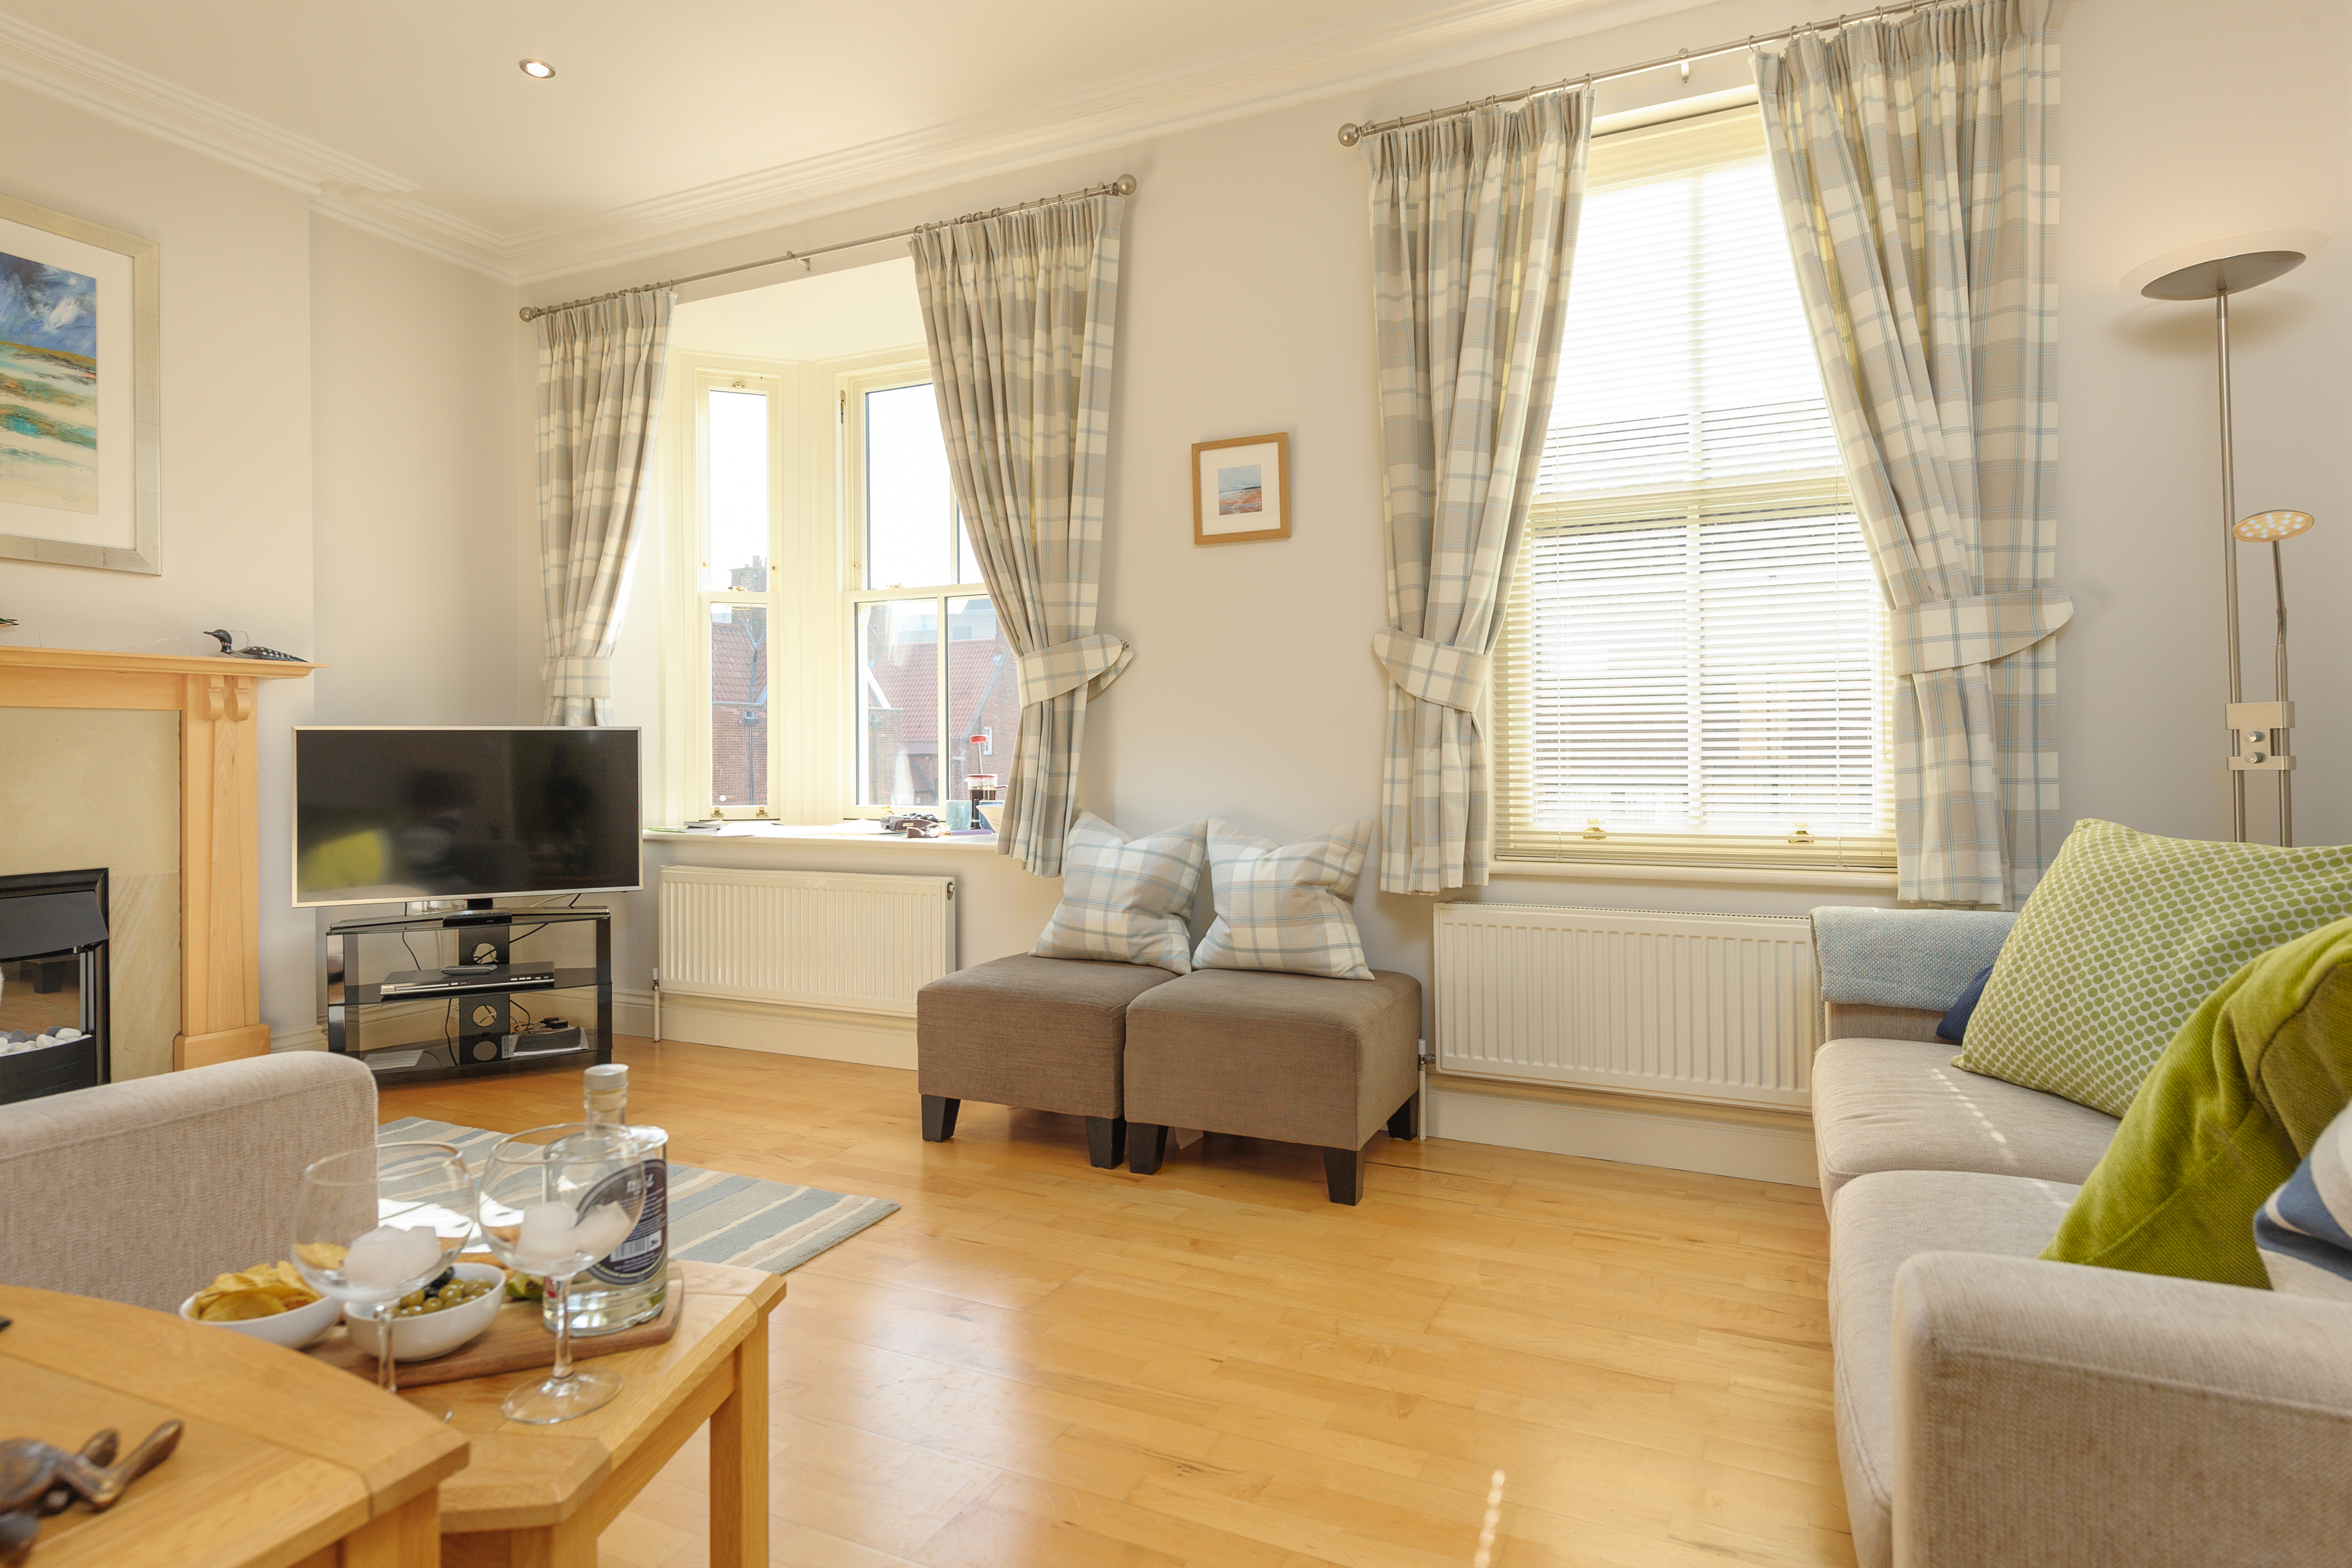 cottages in alnwick available for rent close to the coast in northumberland